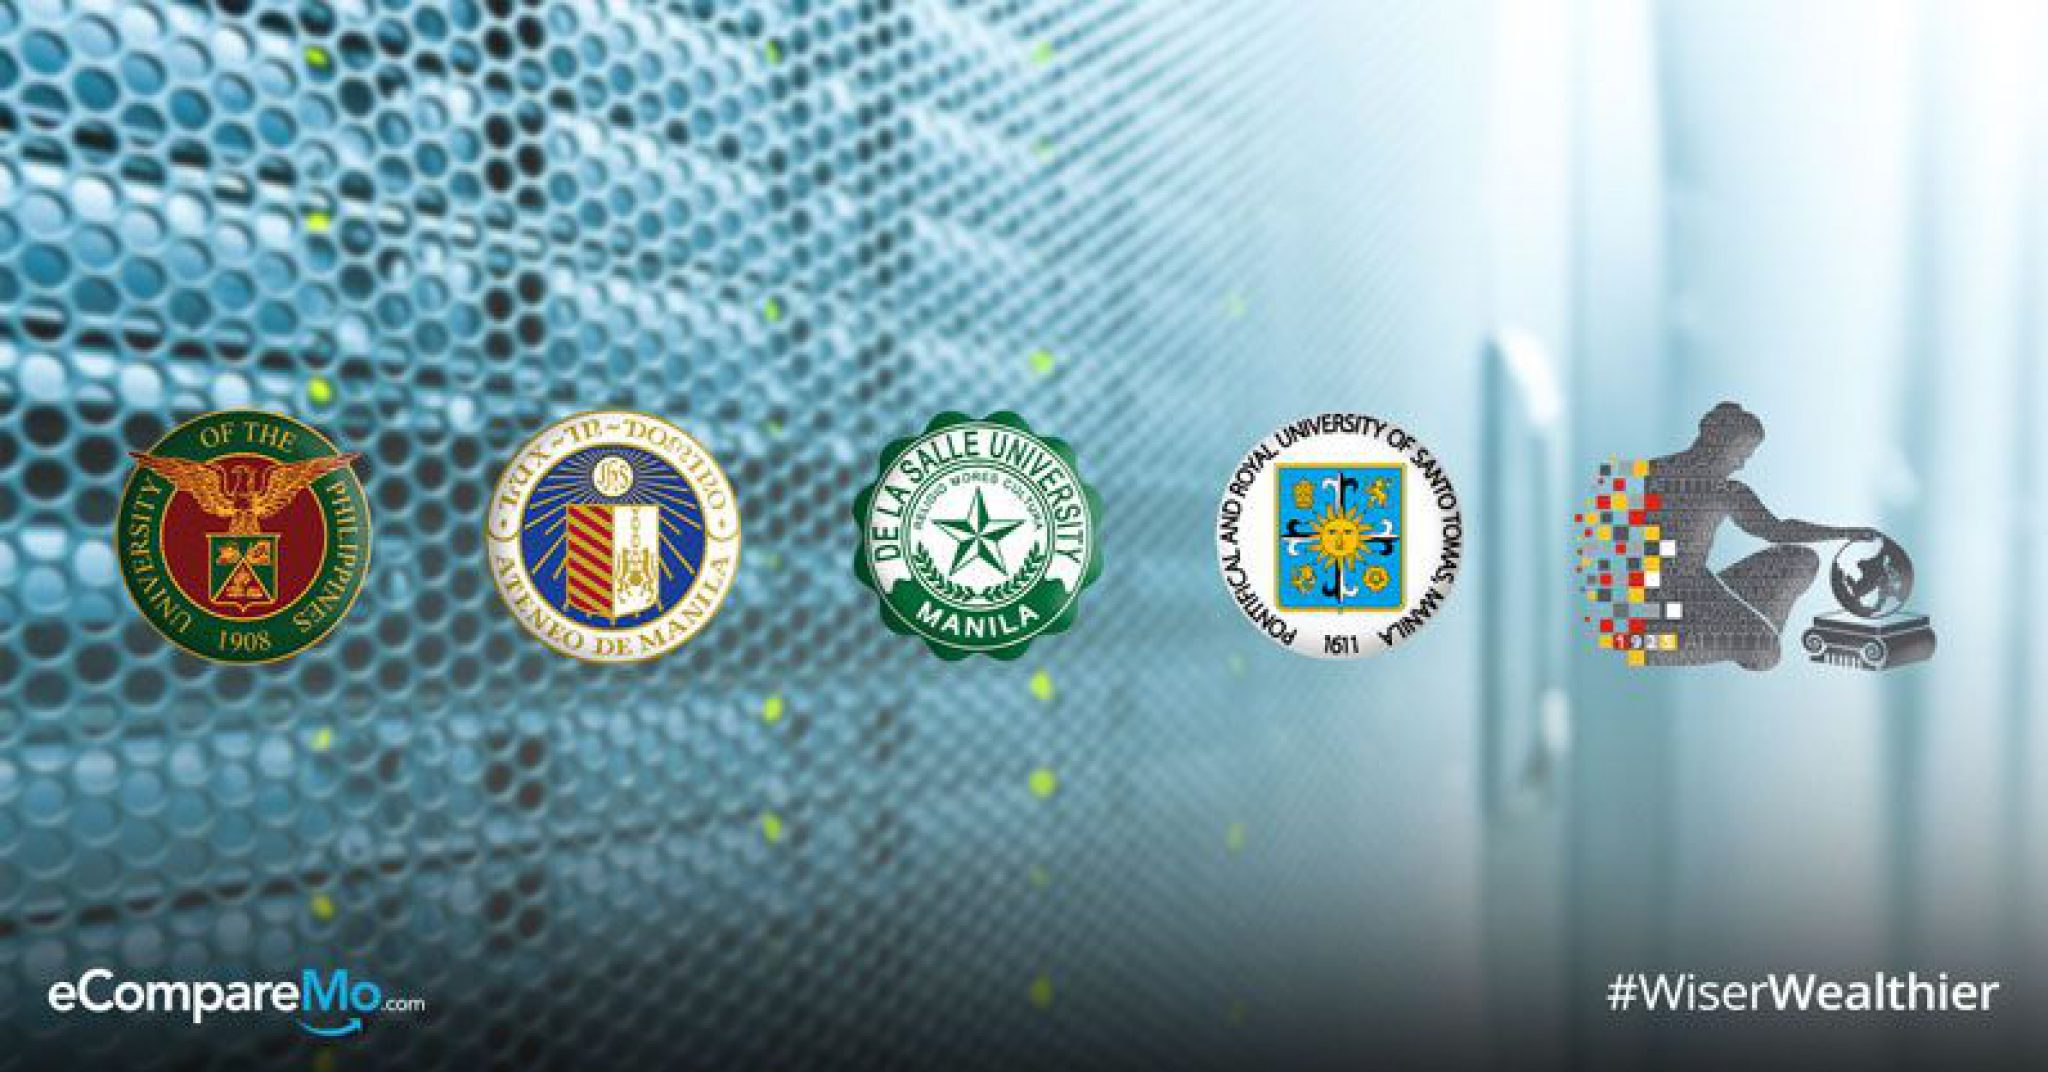 Top 10 IT and Computer Science Schools in the Philippines